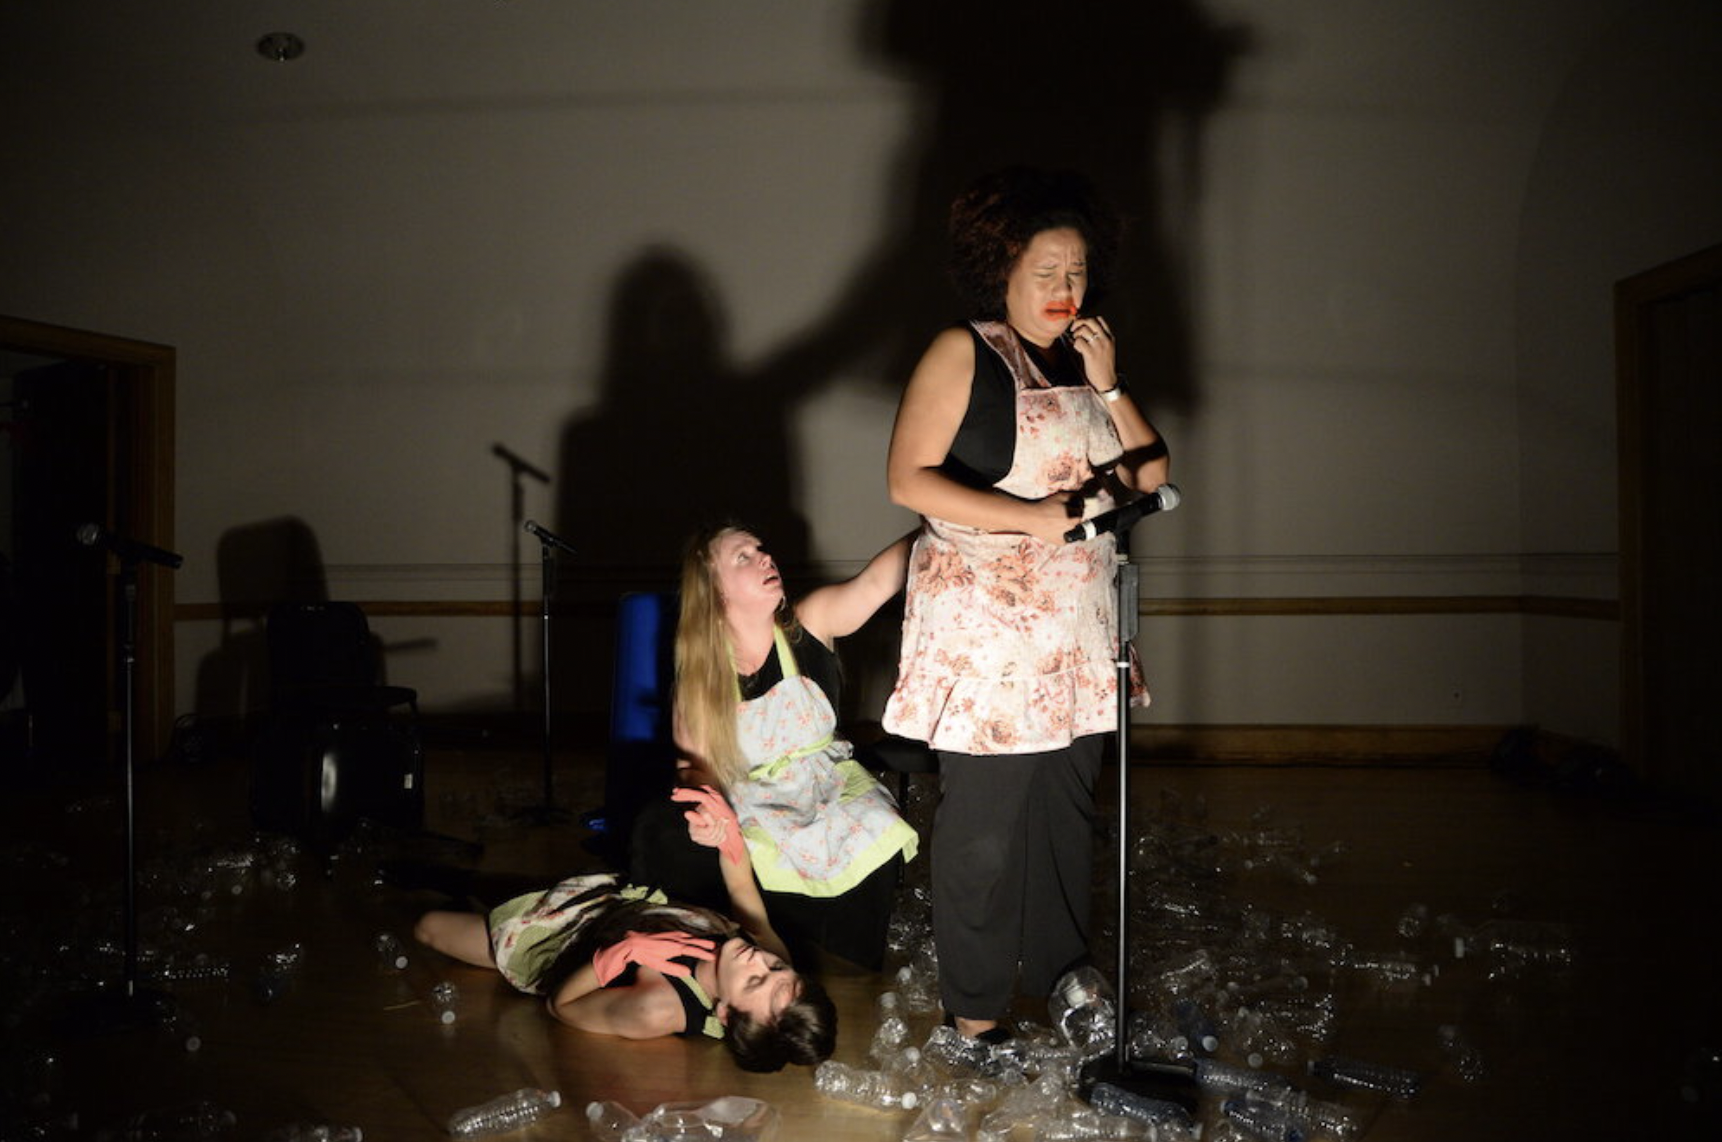 Photo of three actors on a dark stage with a mic in front of them. One of the actors is crying, one is reaching out to her, and the other is lying on the ground.